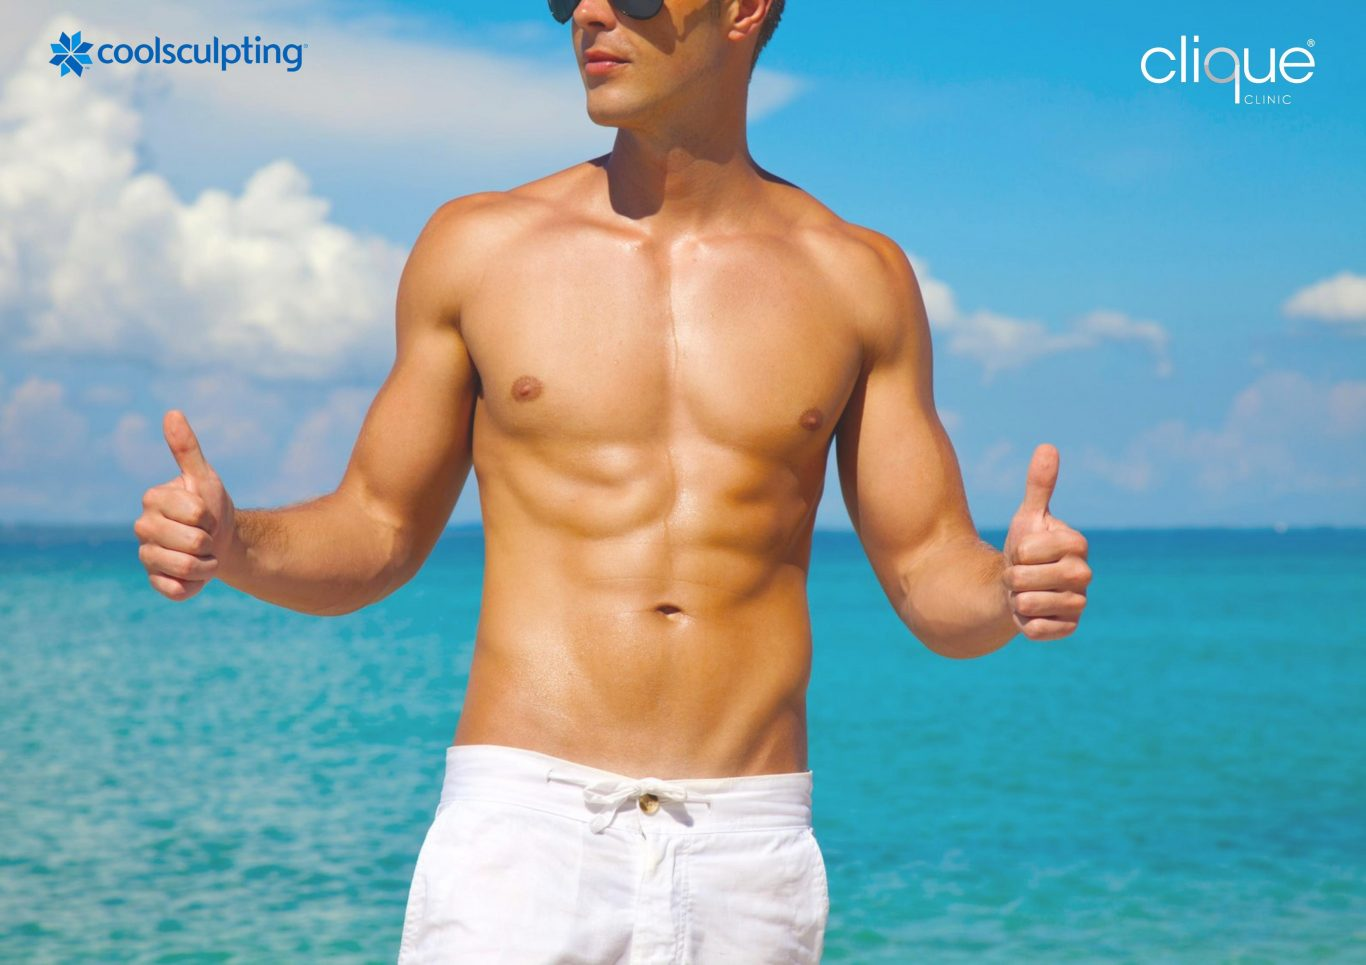 Coolsculpting Treatment Aesthetic Clinic KL Selangor Malaysia